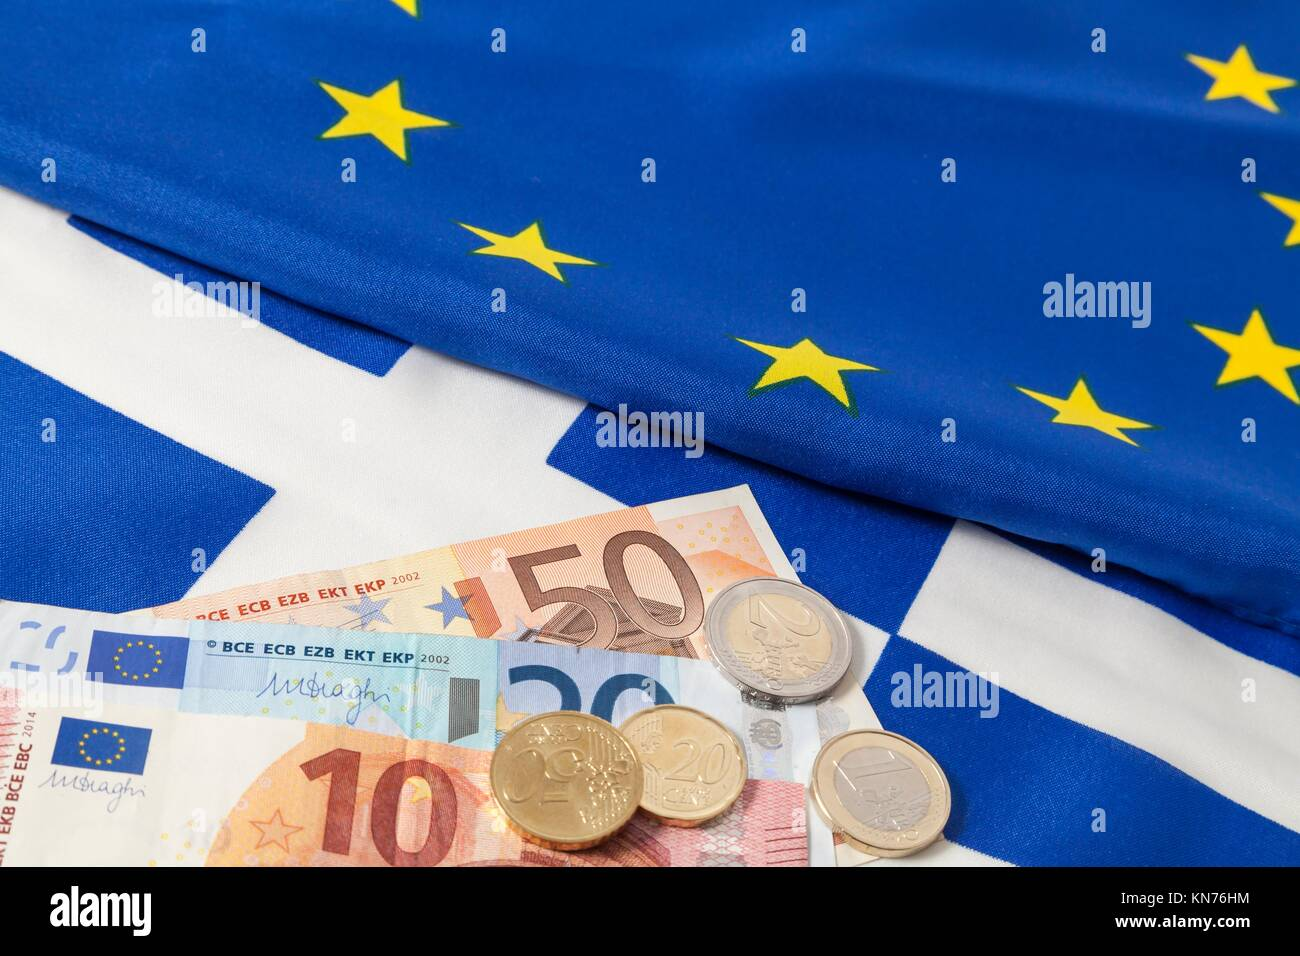 EU and greek flag and Euro cash. - Stock Image